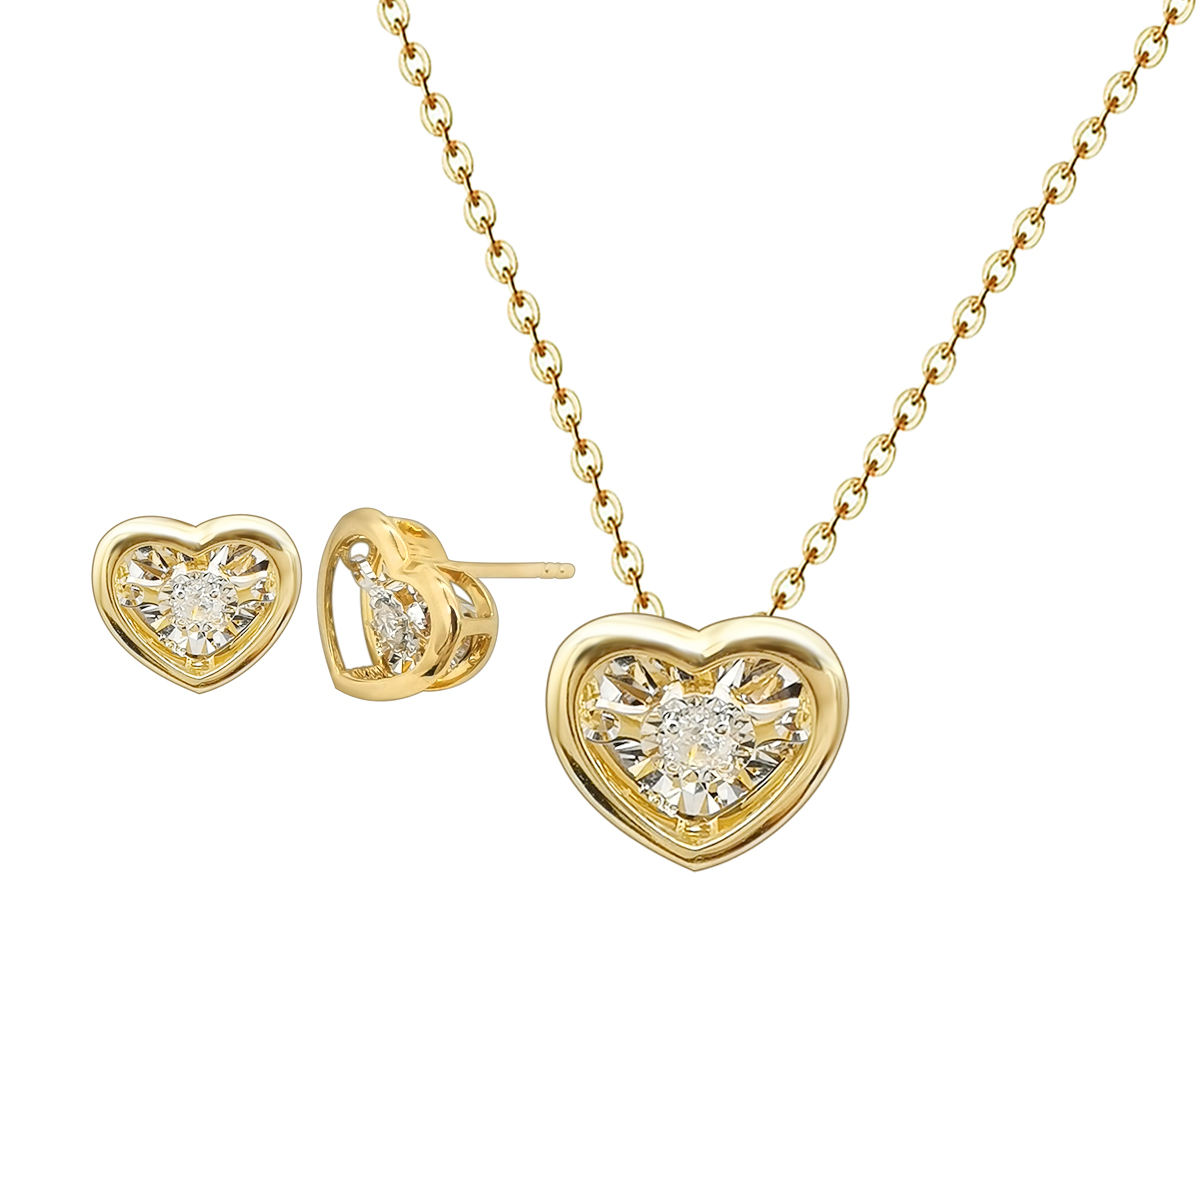 Popular Gold 18k Gold Heart Necklace Dancing Diamond Heart Earrings 18K Gold Necklace Set